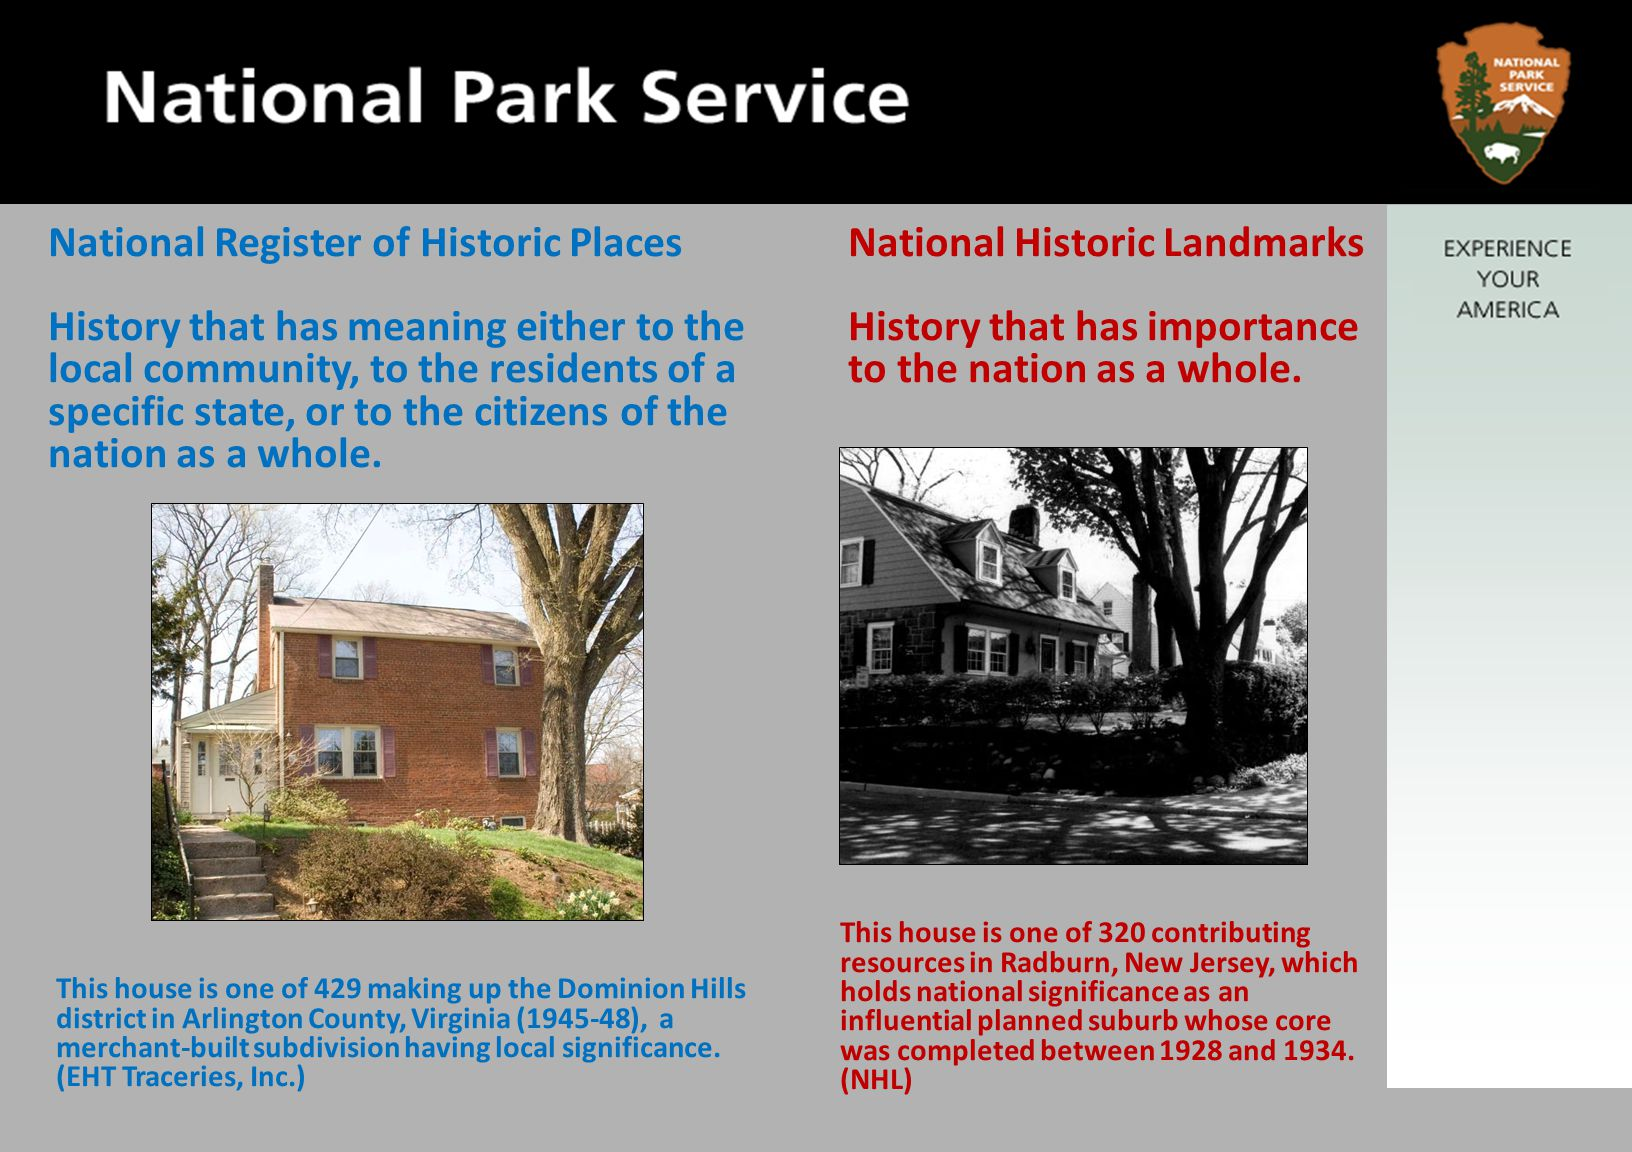 National Register of Historic Places History that has meaning either to the local community, to the residents of a specific state, or to the citizens of the nation as a whole.